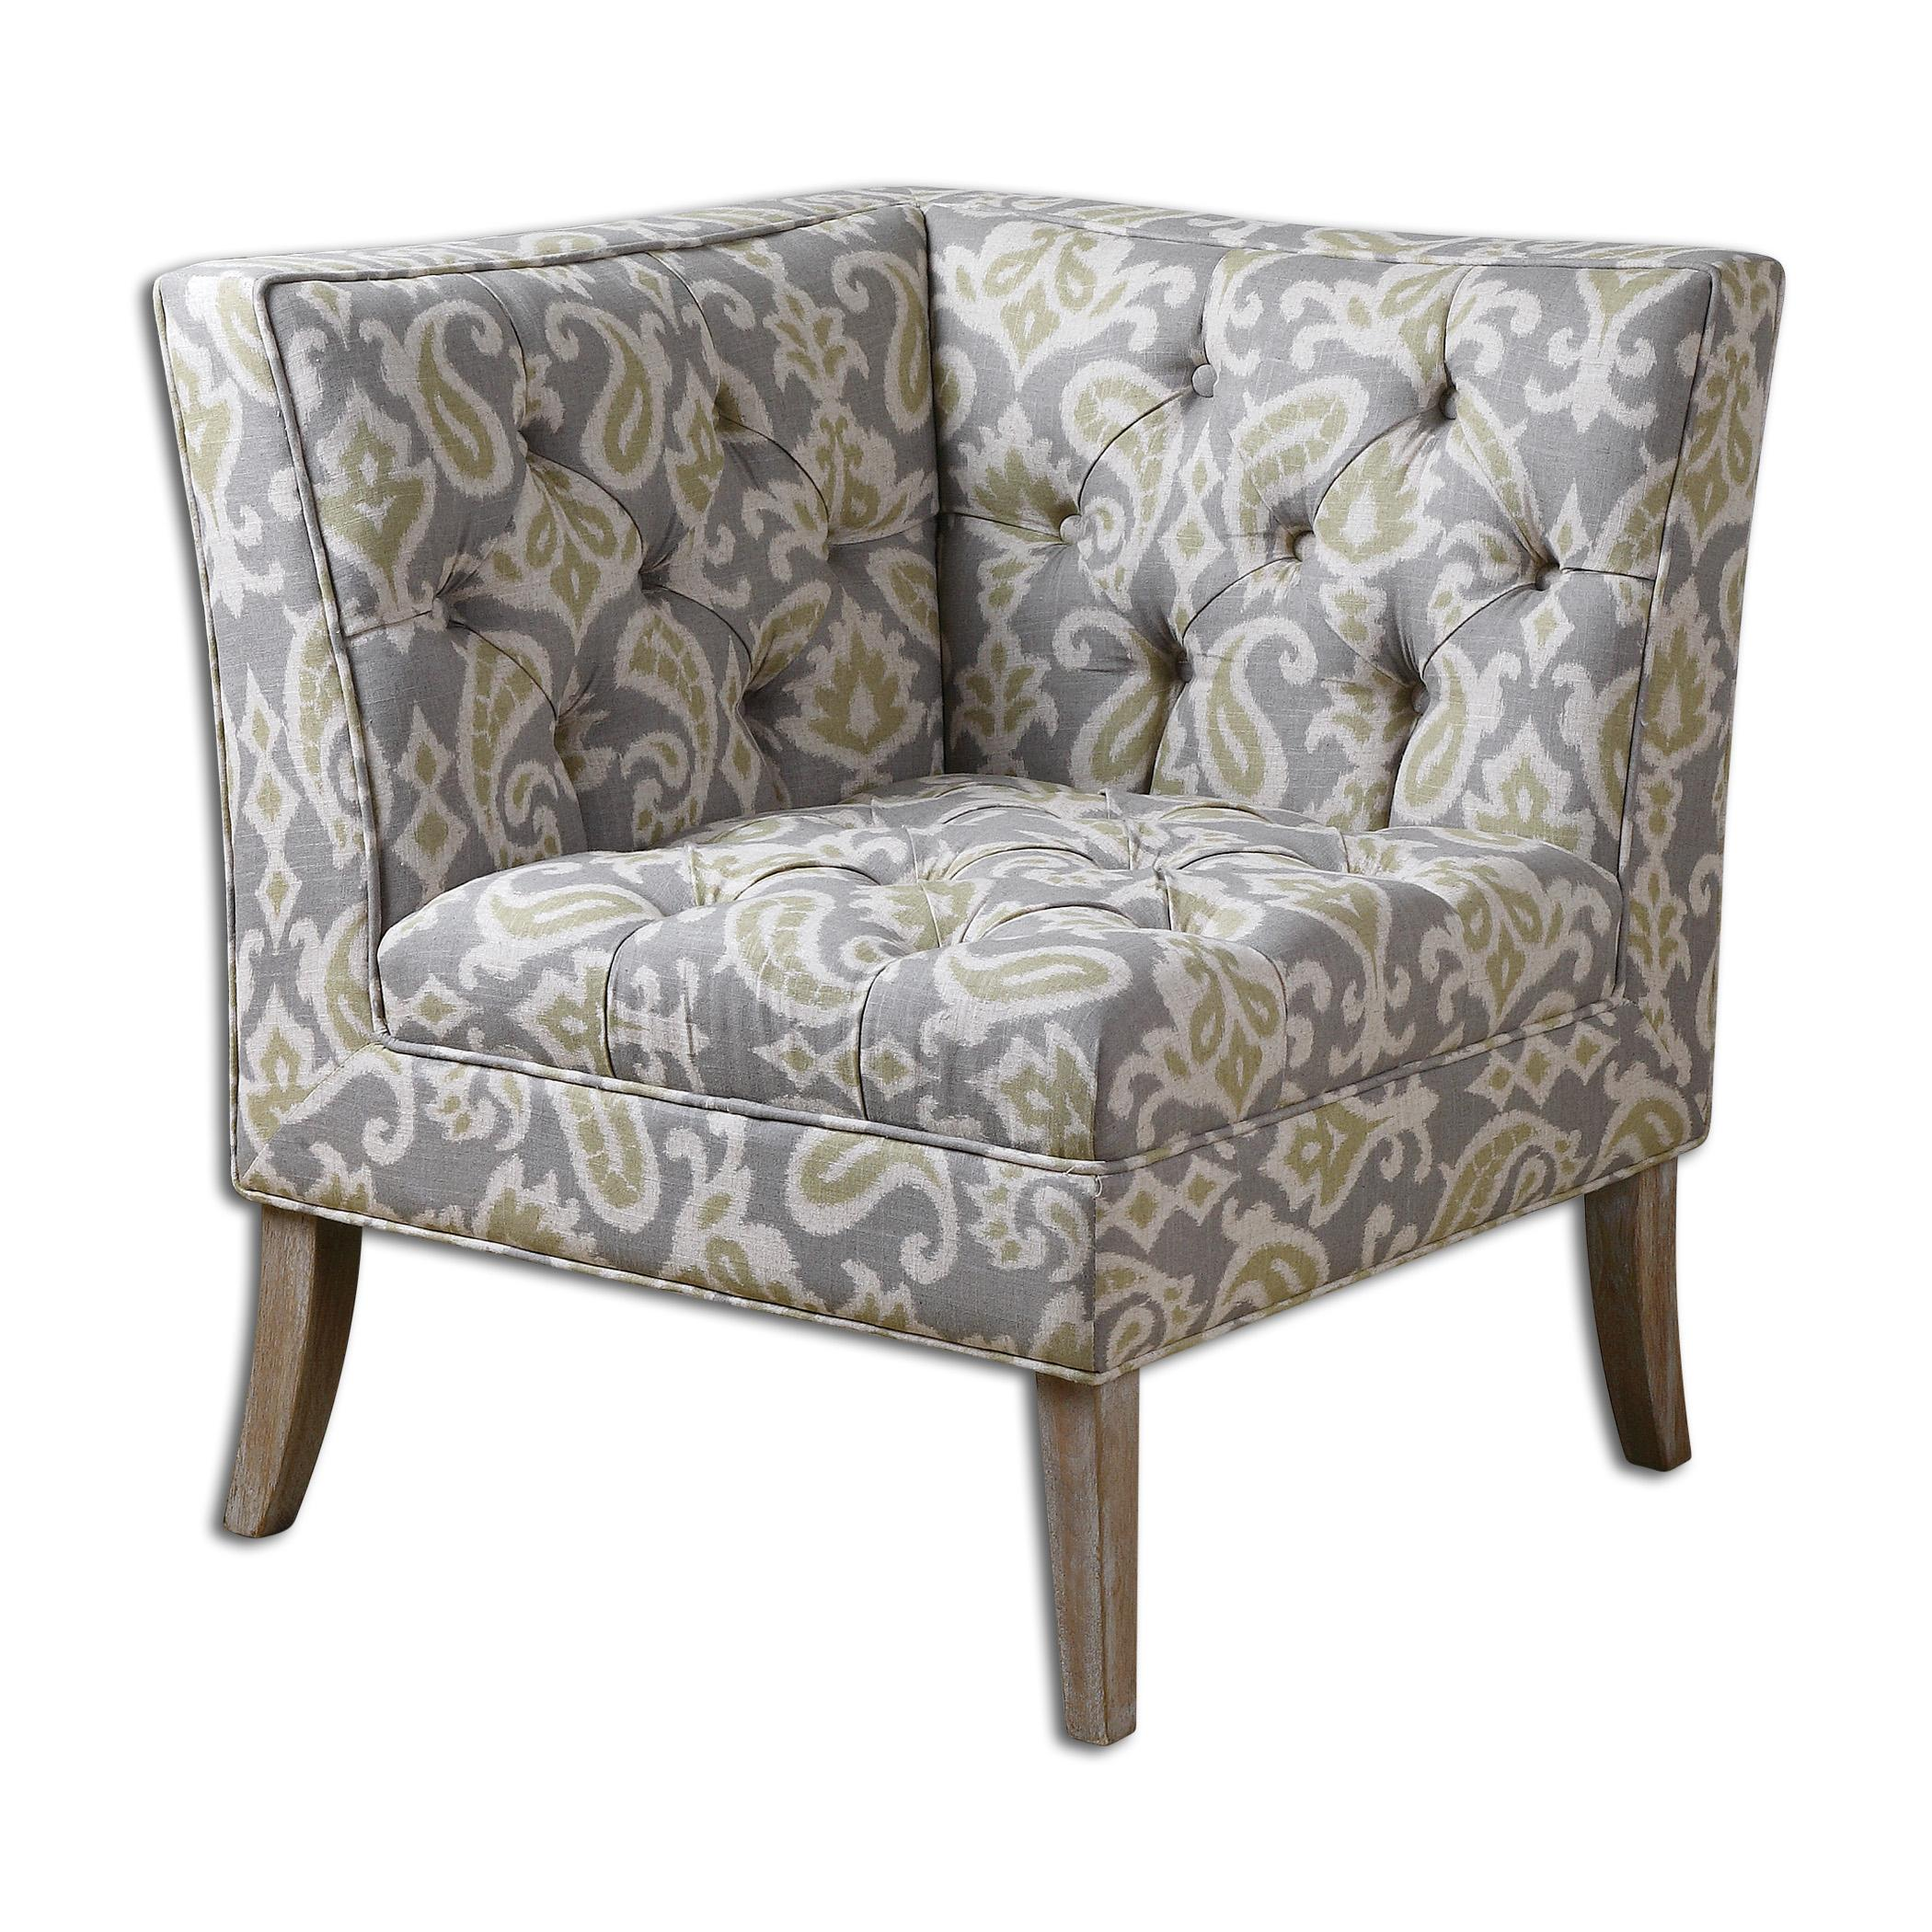 Uttermost Accent Furniture Meliso Tufted Corner Chair - Item Number: 23167